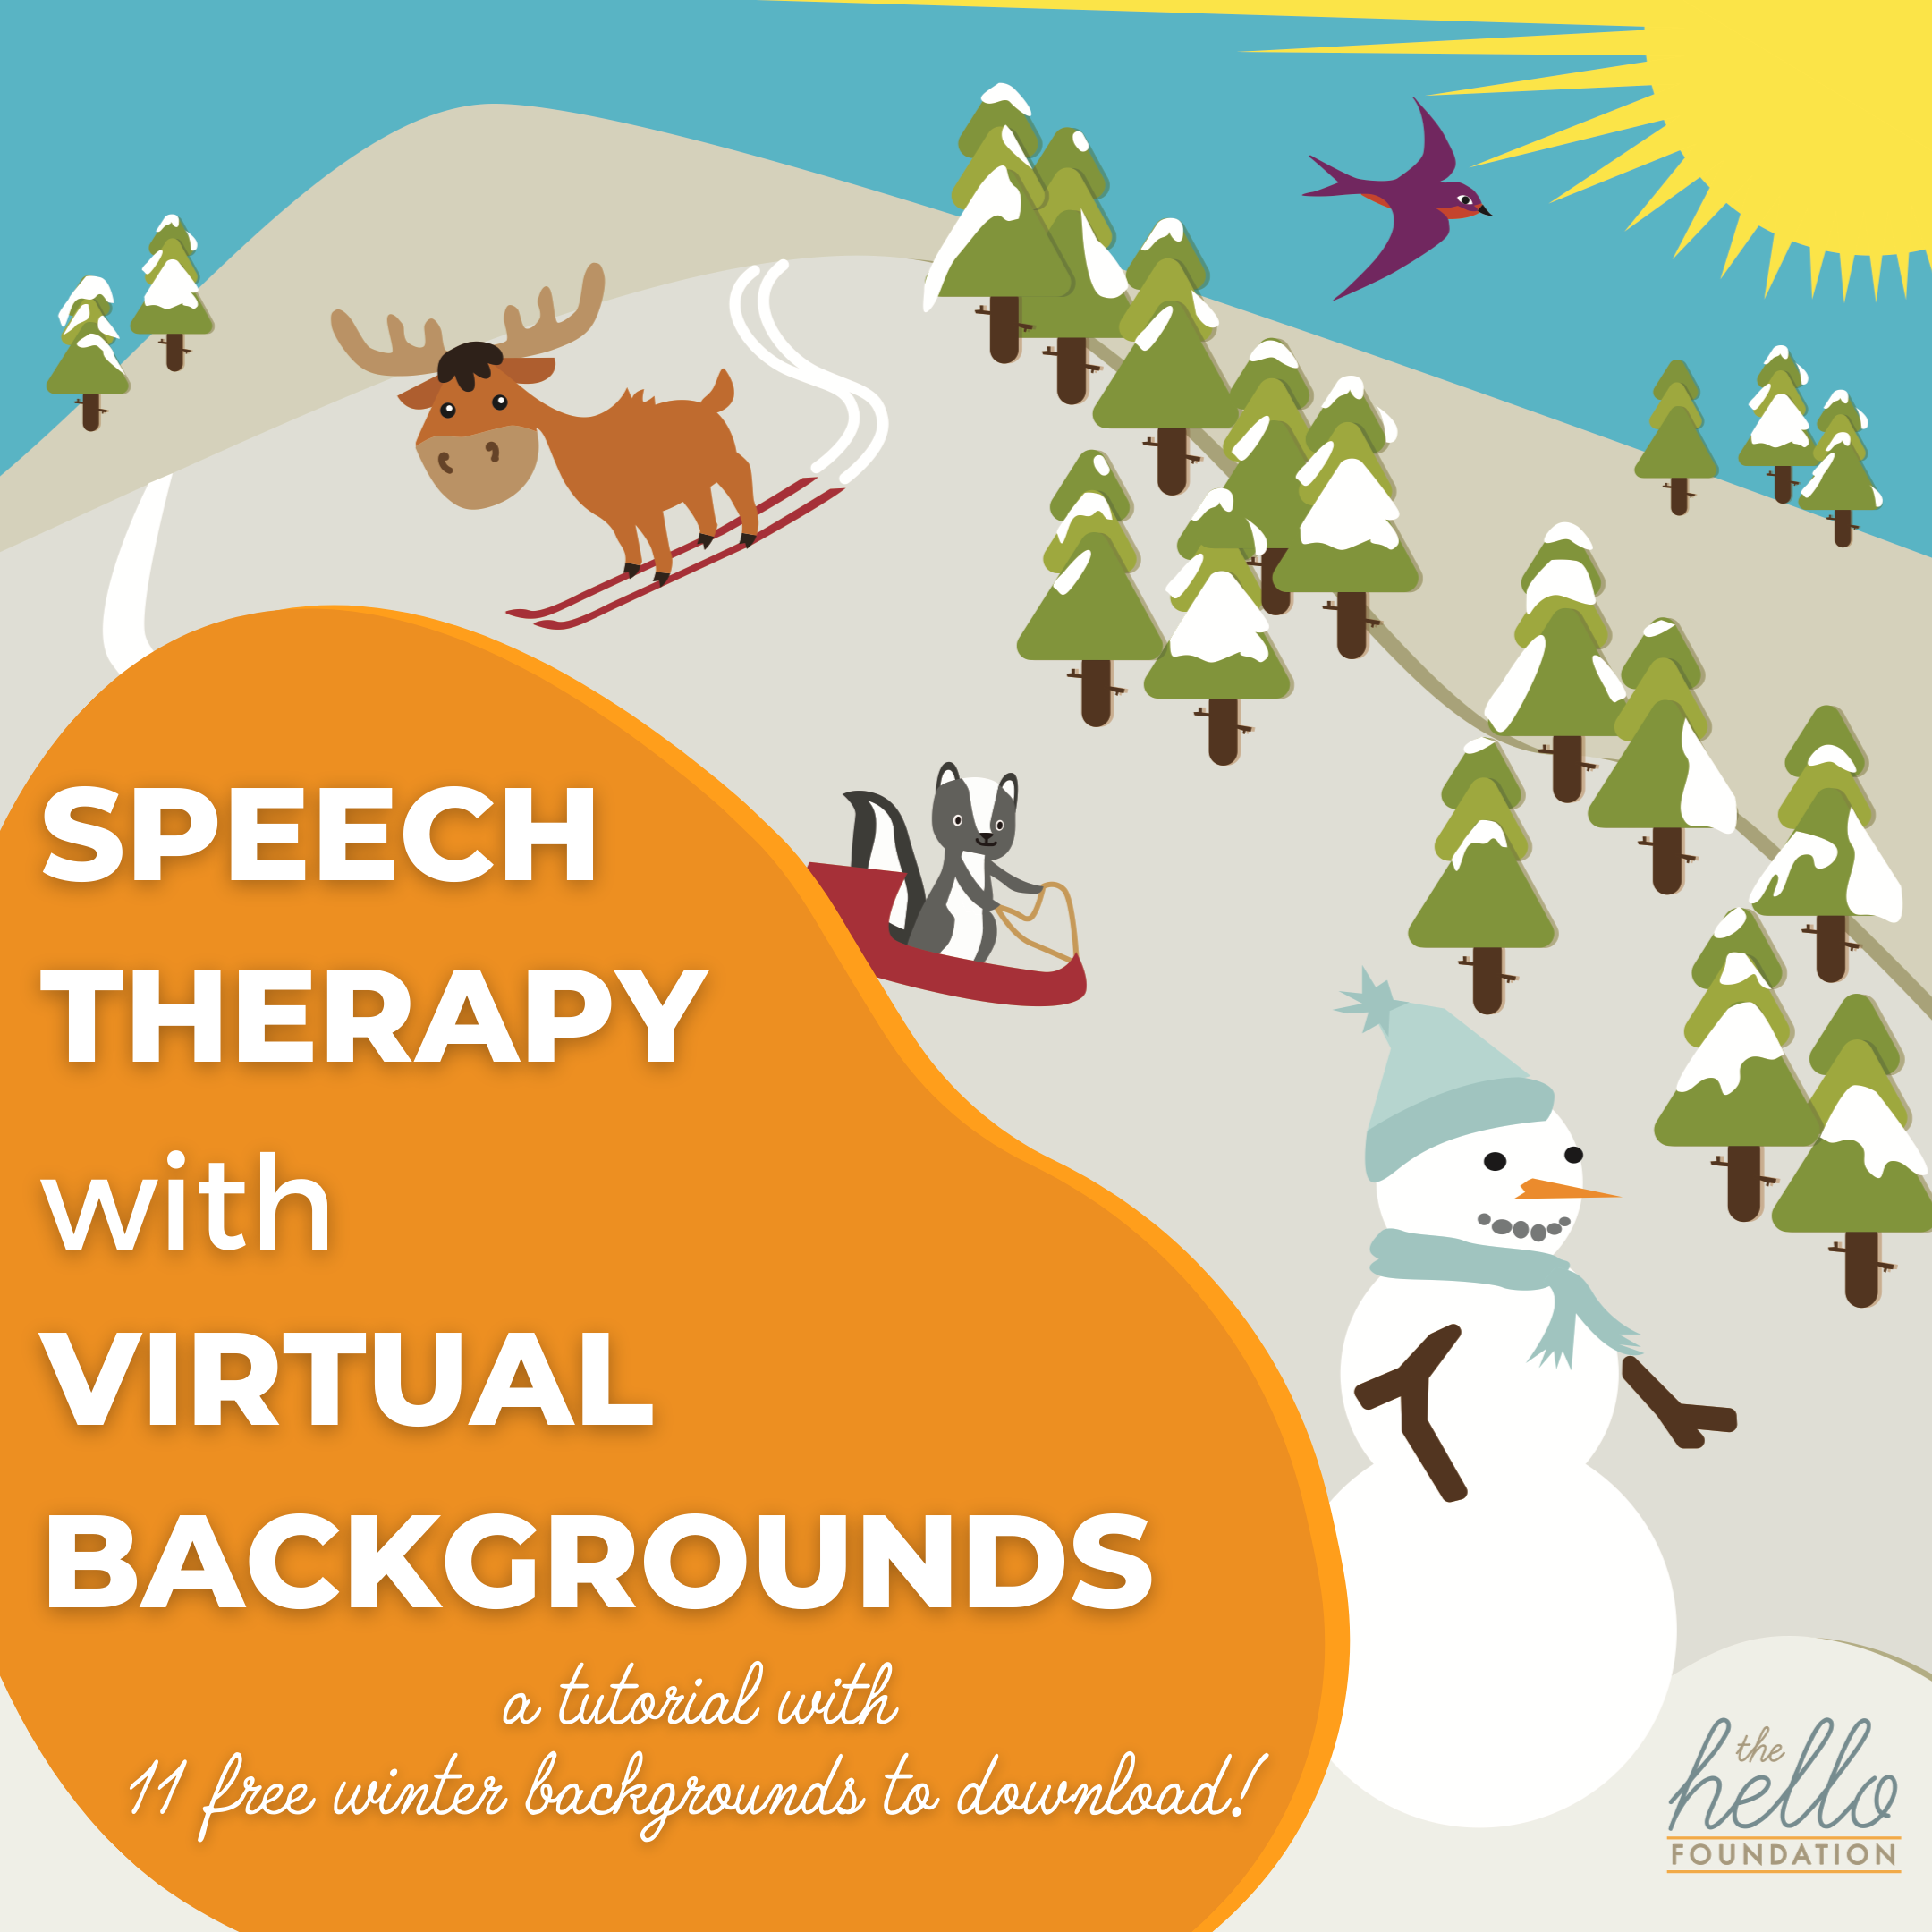 Speech Therapy with Virtual Backgrounds Tutorial